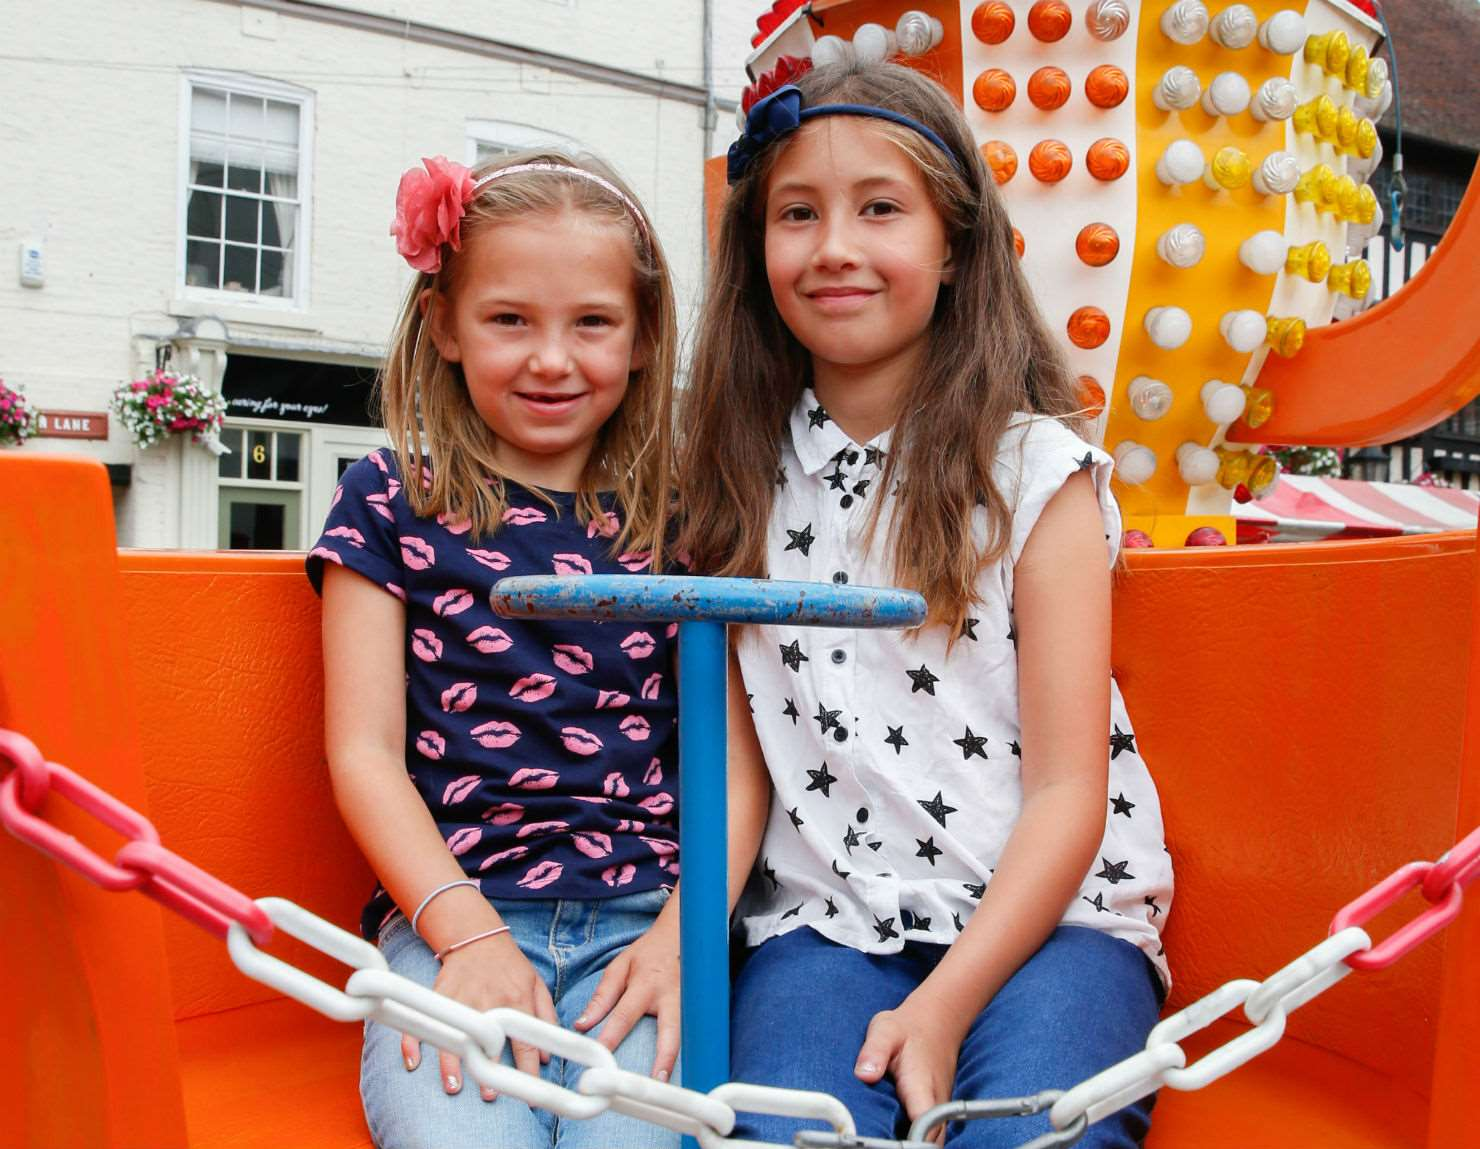 Eloise Neal, 7, left, and Ella Wilson, 9, on the funfair, which was part of Armed Forces Day in Newark for the first time. 250617LSP1-18